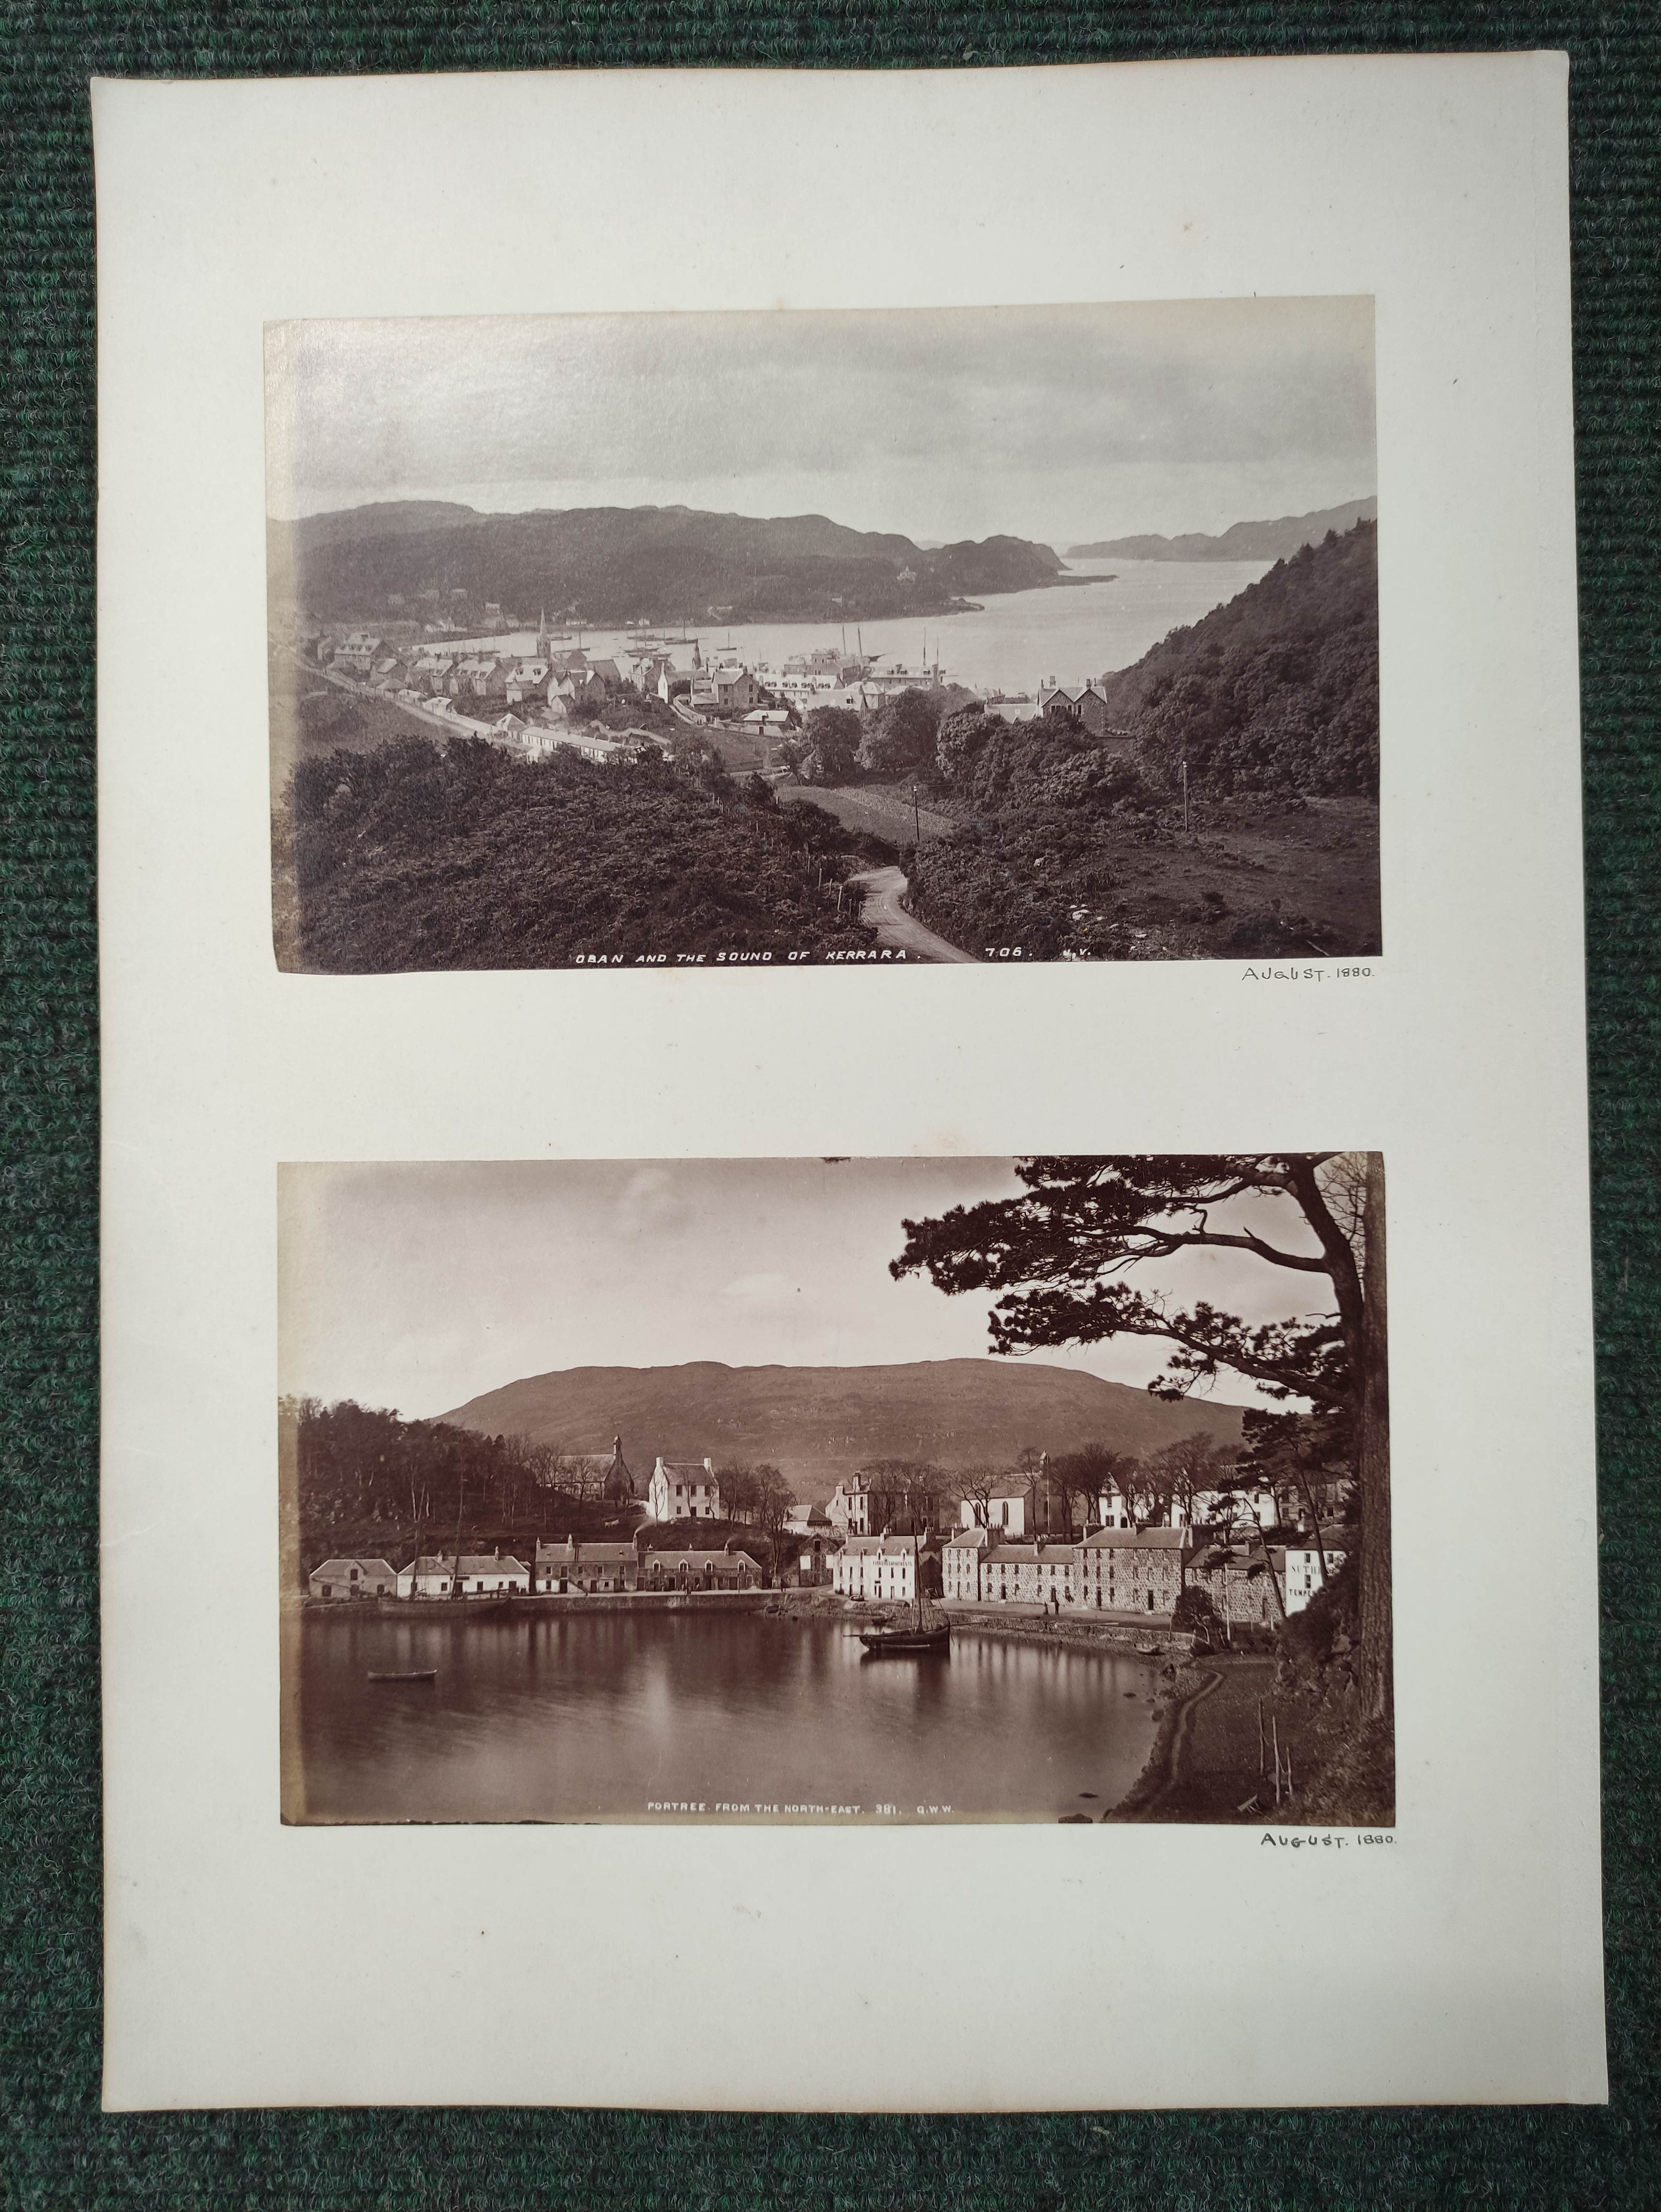 CONNELL ROBERT.St. Kilda & the St. Kildians.Orig. blue cloth. 1887; also one or two other items - Image 8 of 9